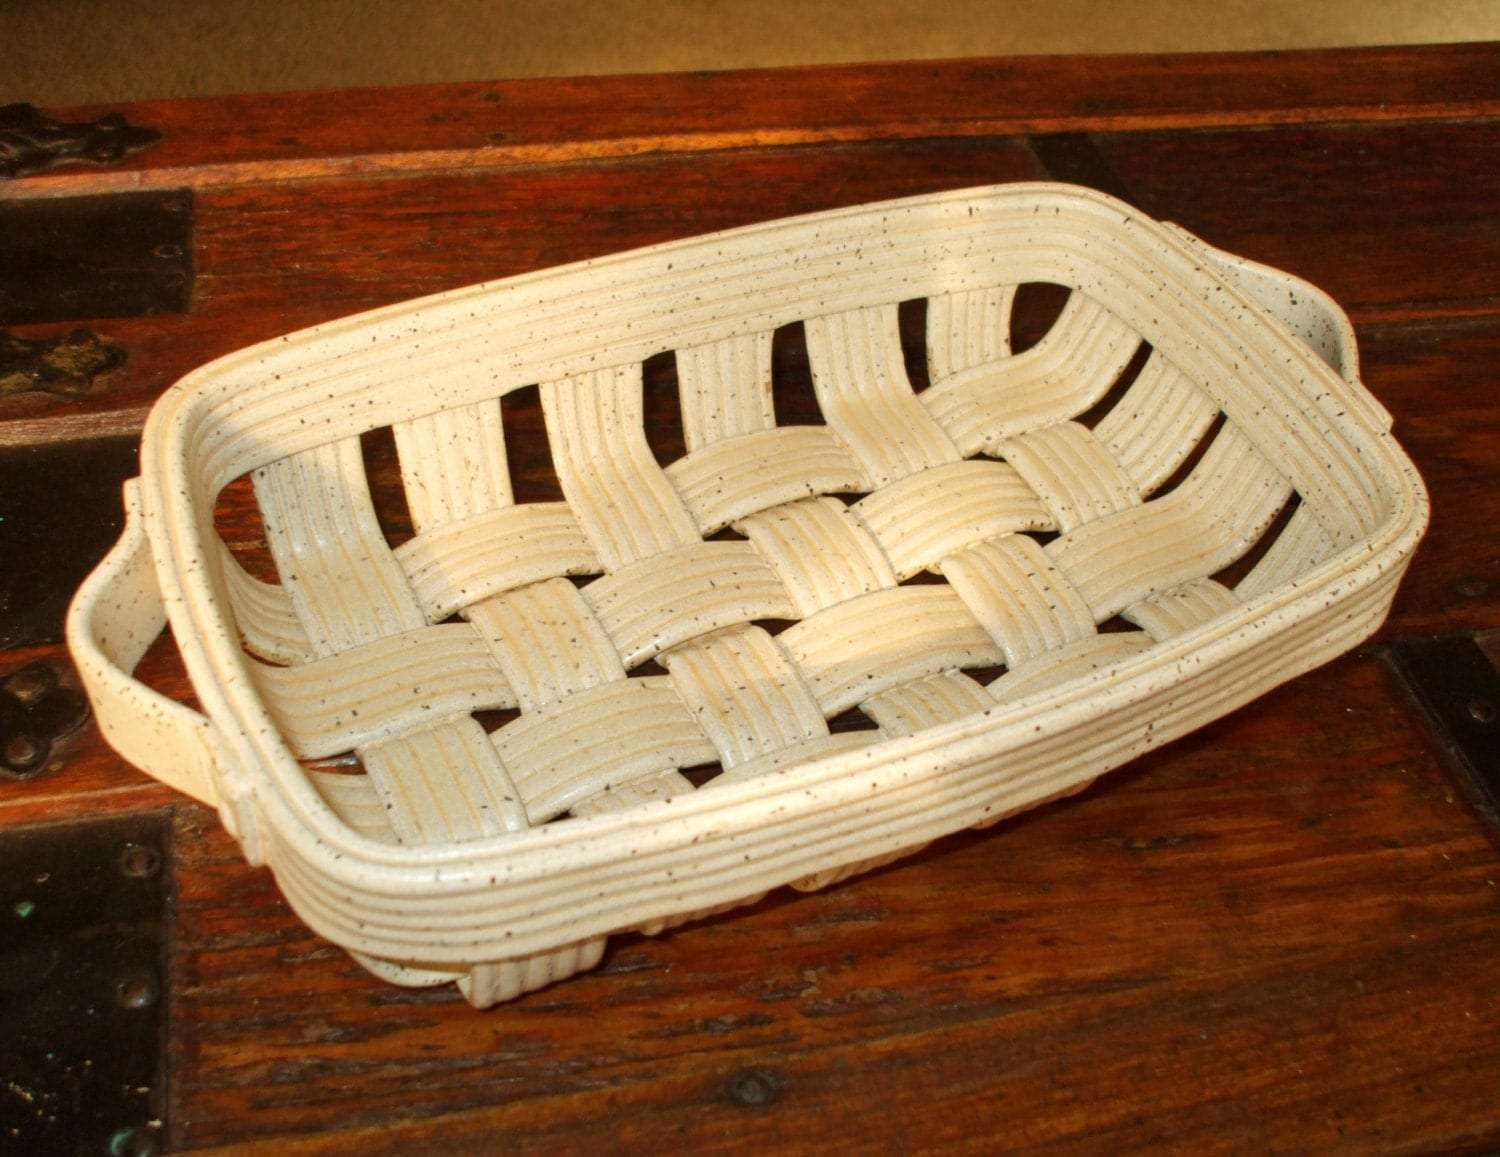 Vintage Pottery Ceramic Bread Roll Basket Tray For Baking